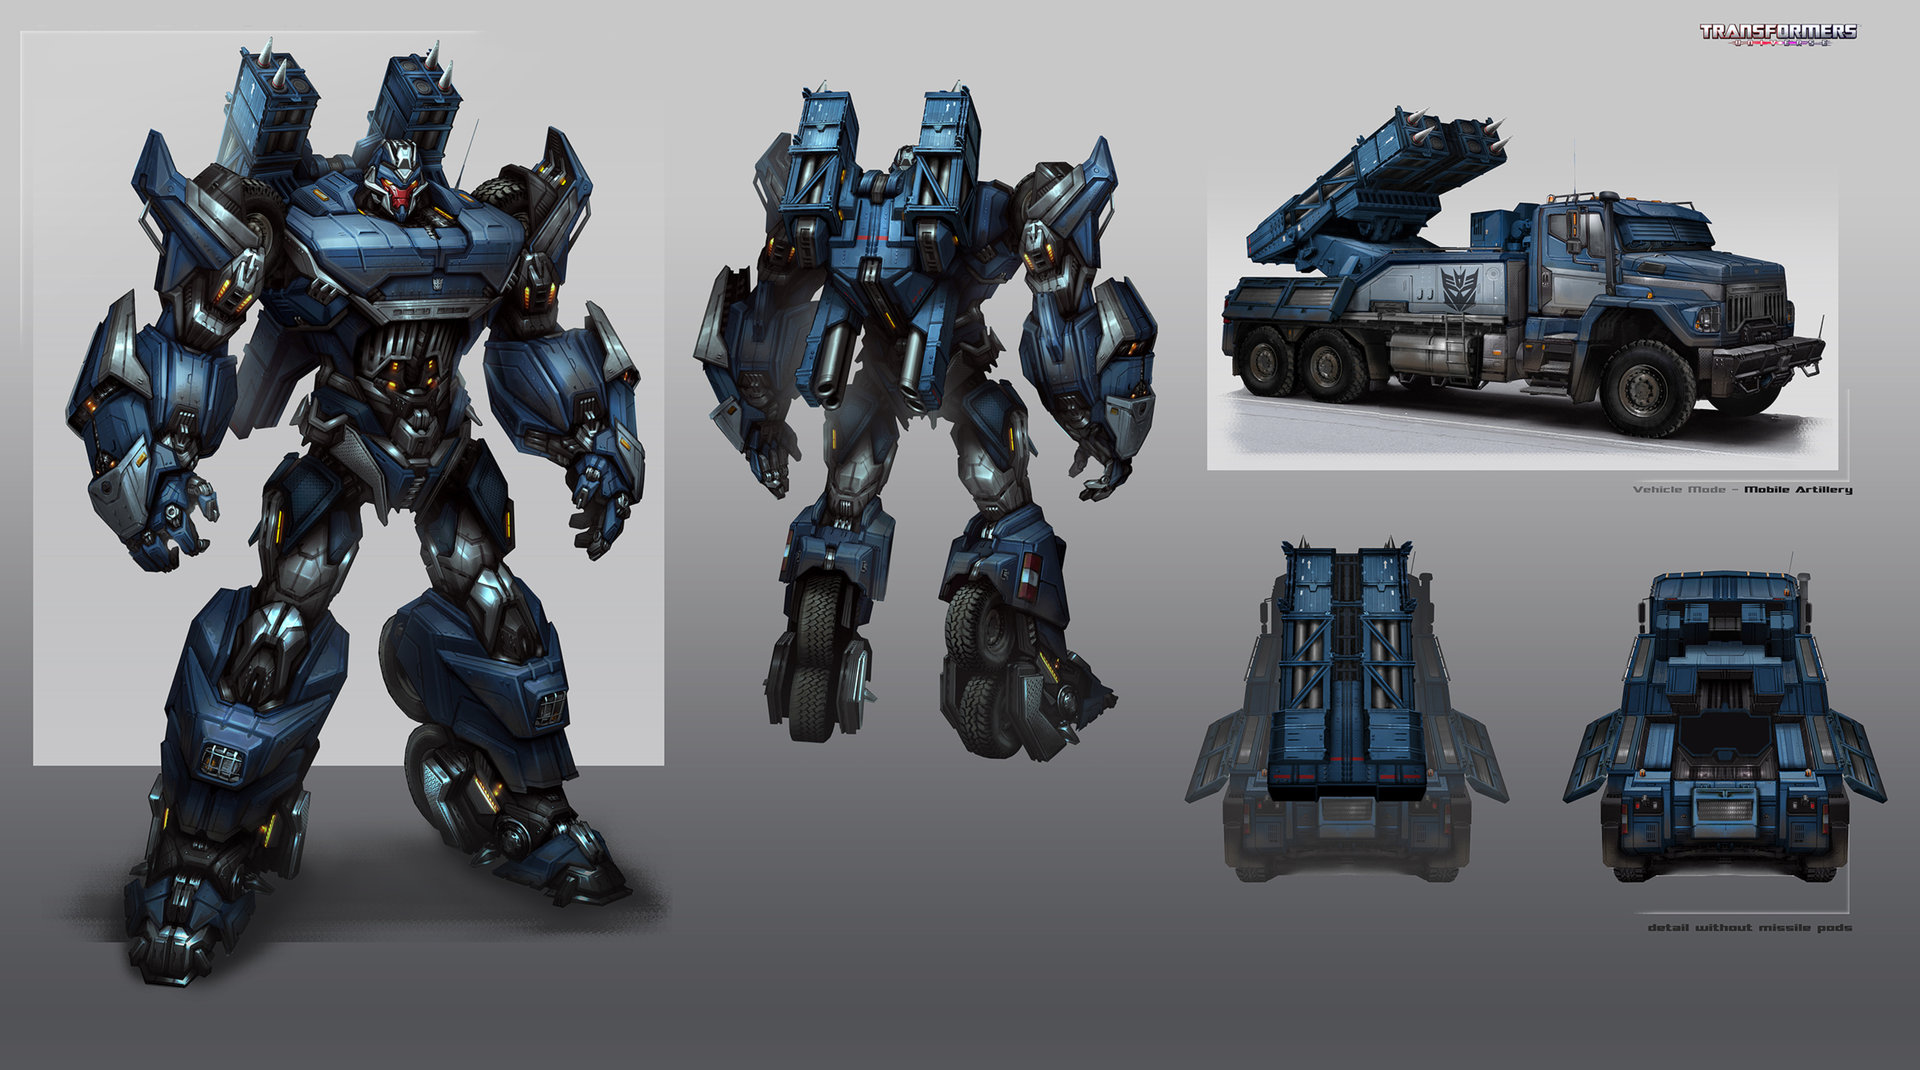 transformers the game drones with 1020779 Transformers Universe Concept Art on Ooc additionally Transformers Decepticon Blackout 652596311 as well Avengers Age Of Ultron Concept Art Featuring Alternate Hulkbuster Ultron Designs Iron Man Drones besides 416231190538101782 further Swindle  Movie.